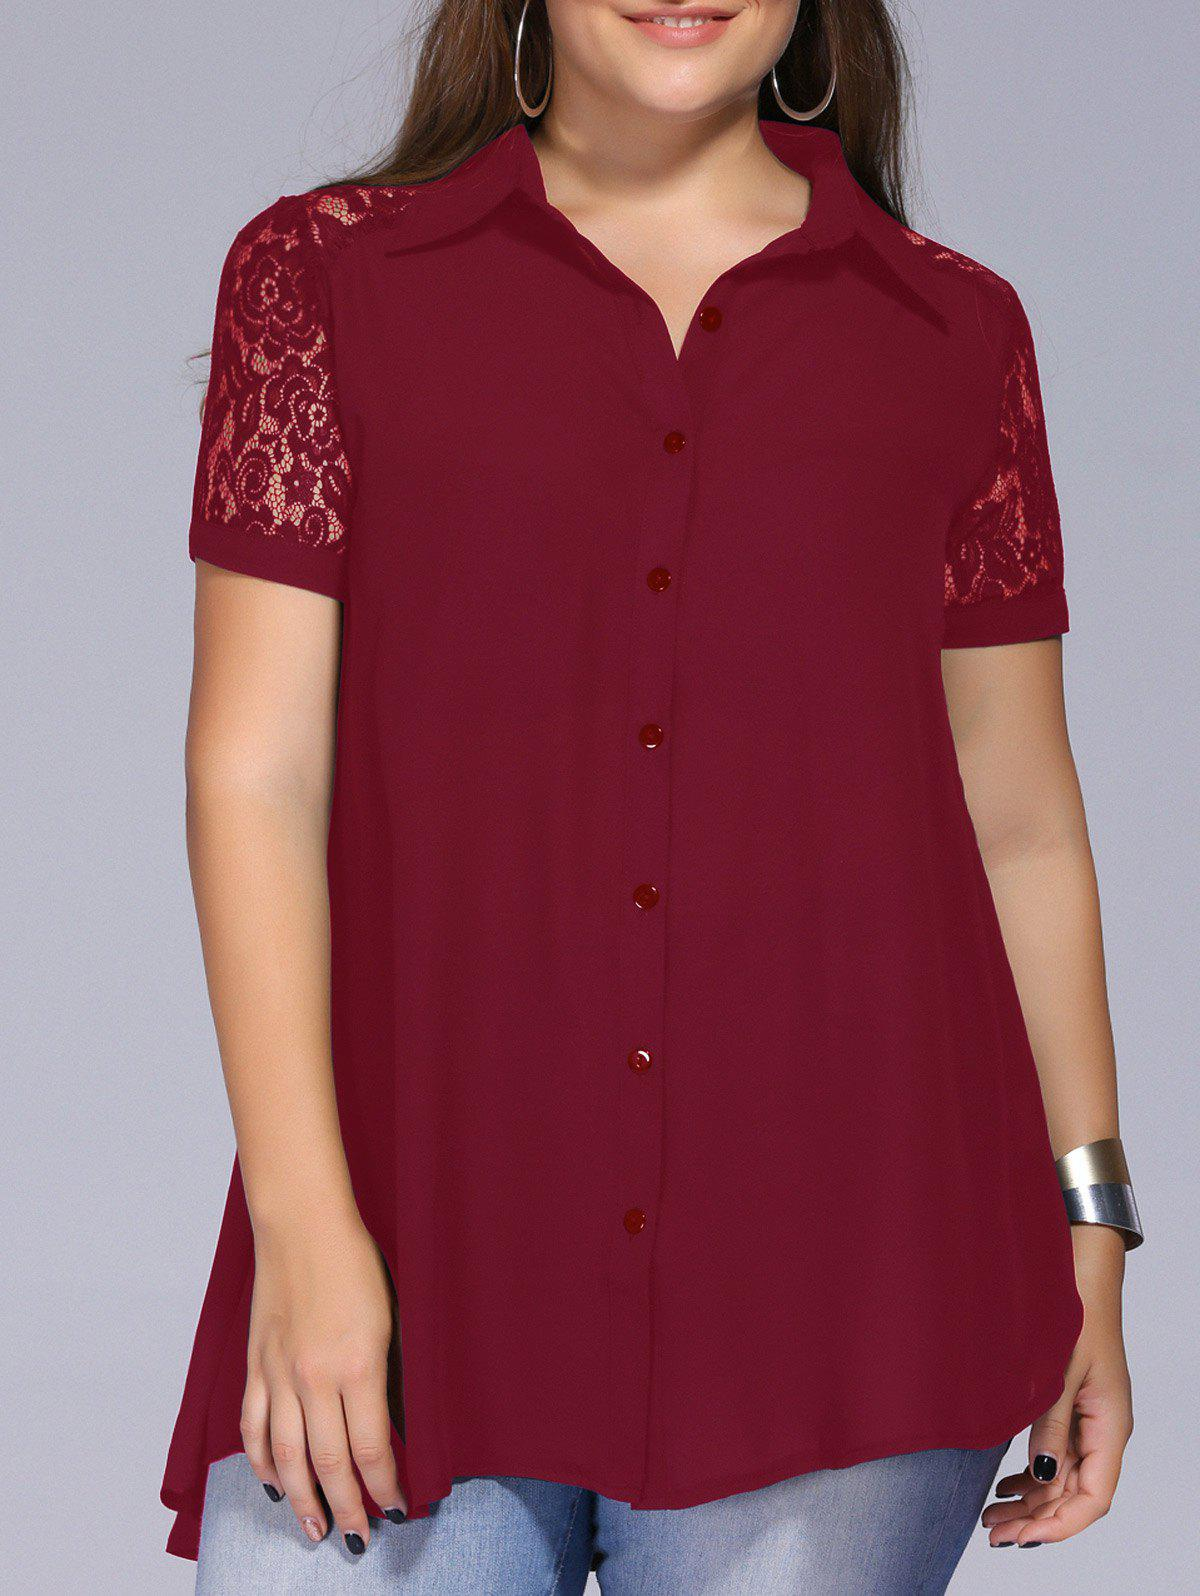 Lace Trim Plus Size Blouse - WINE RED 2XL